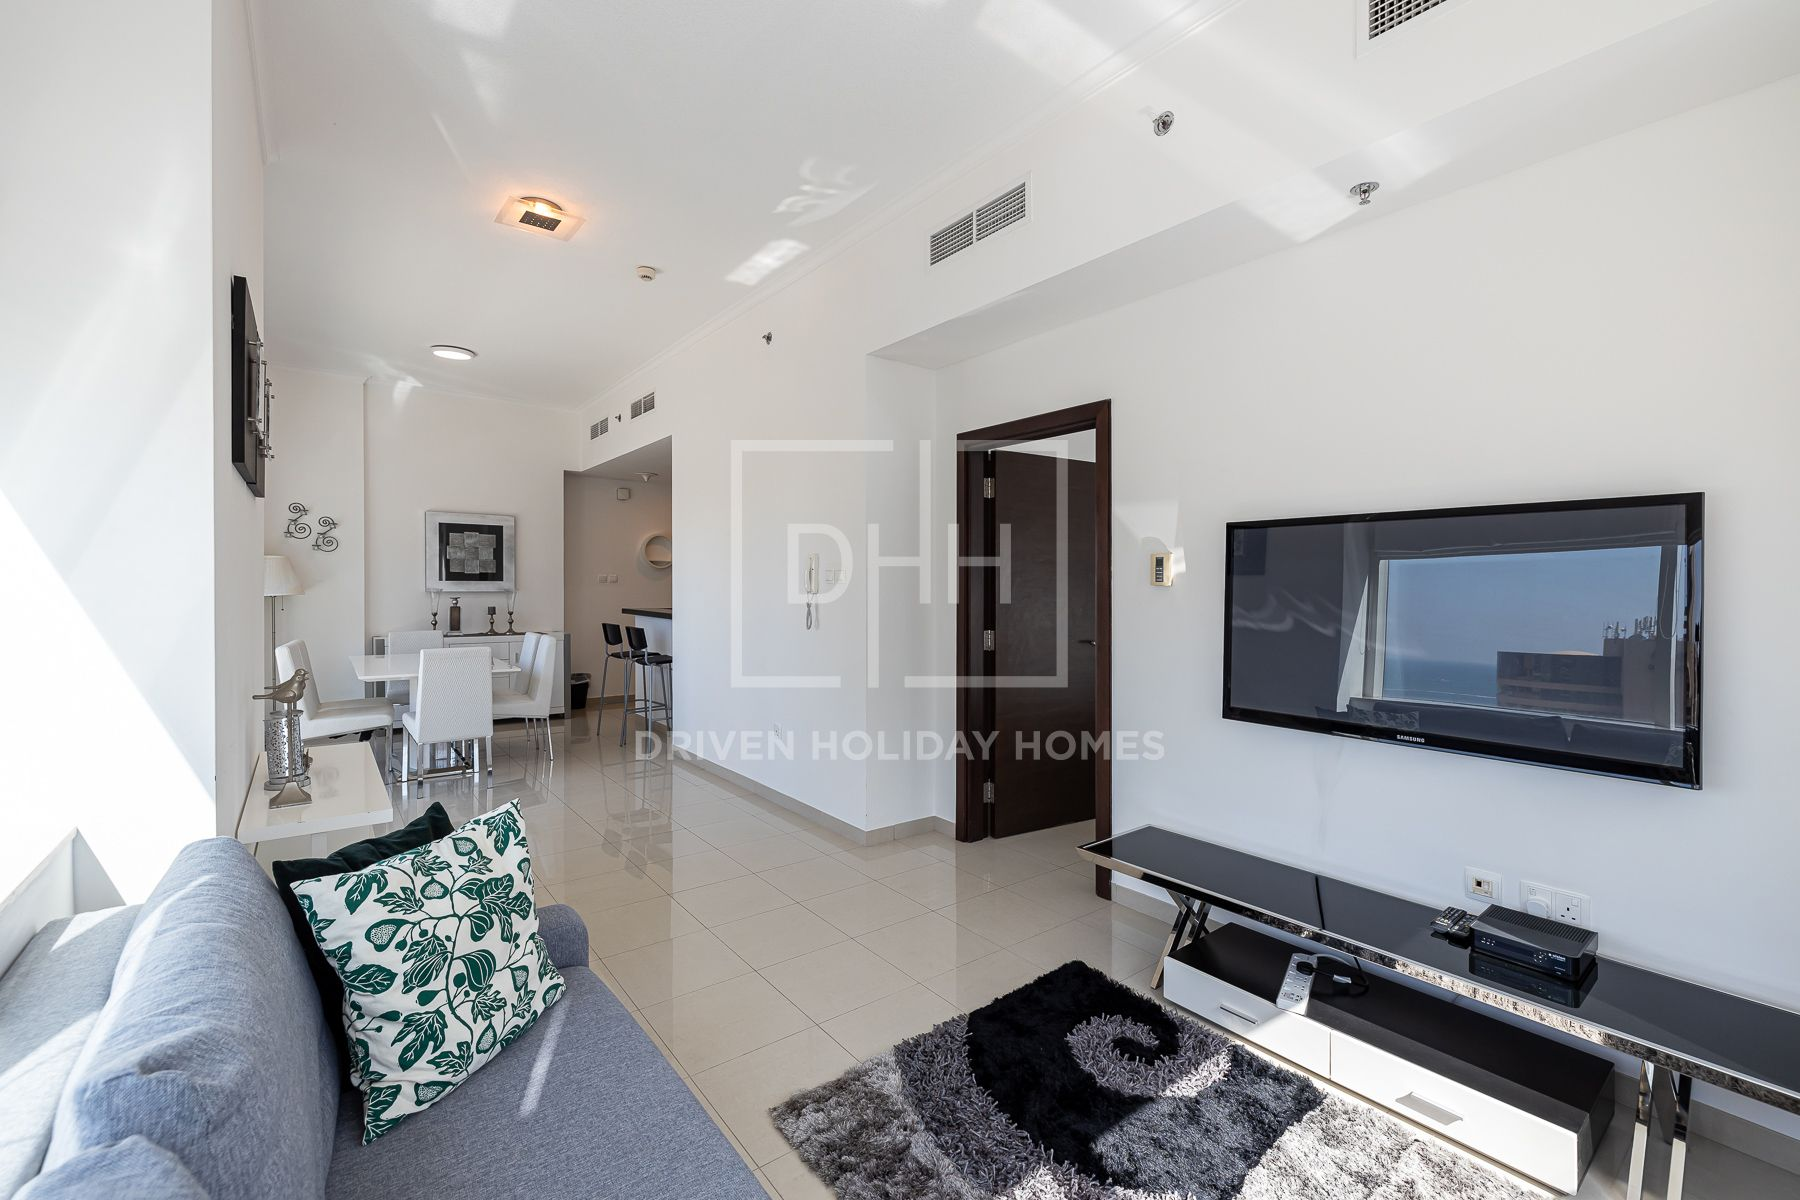 Bright and Spotless Home, Partial Sea